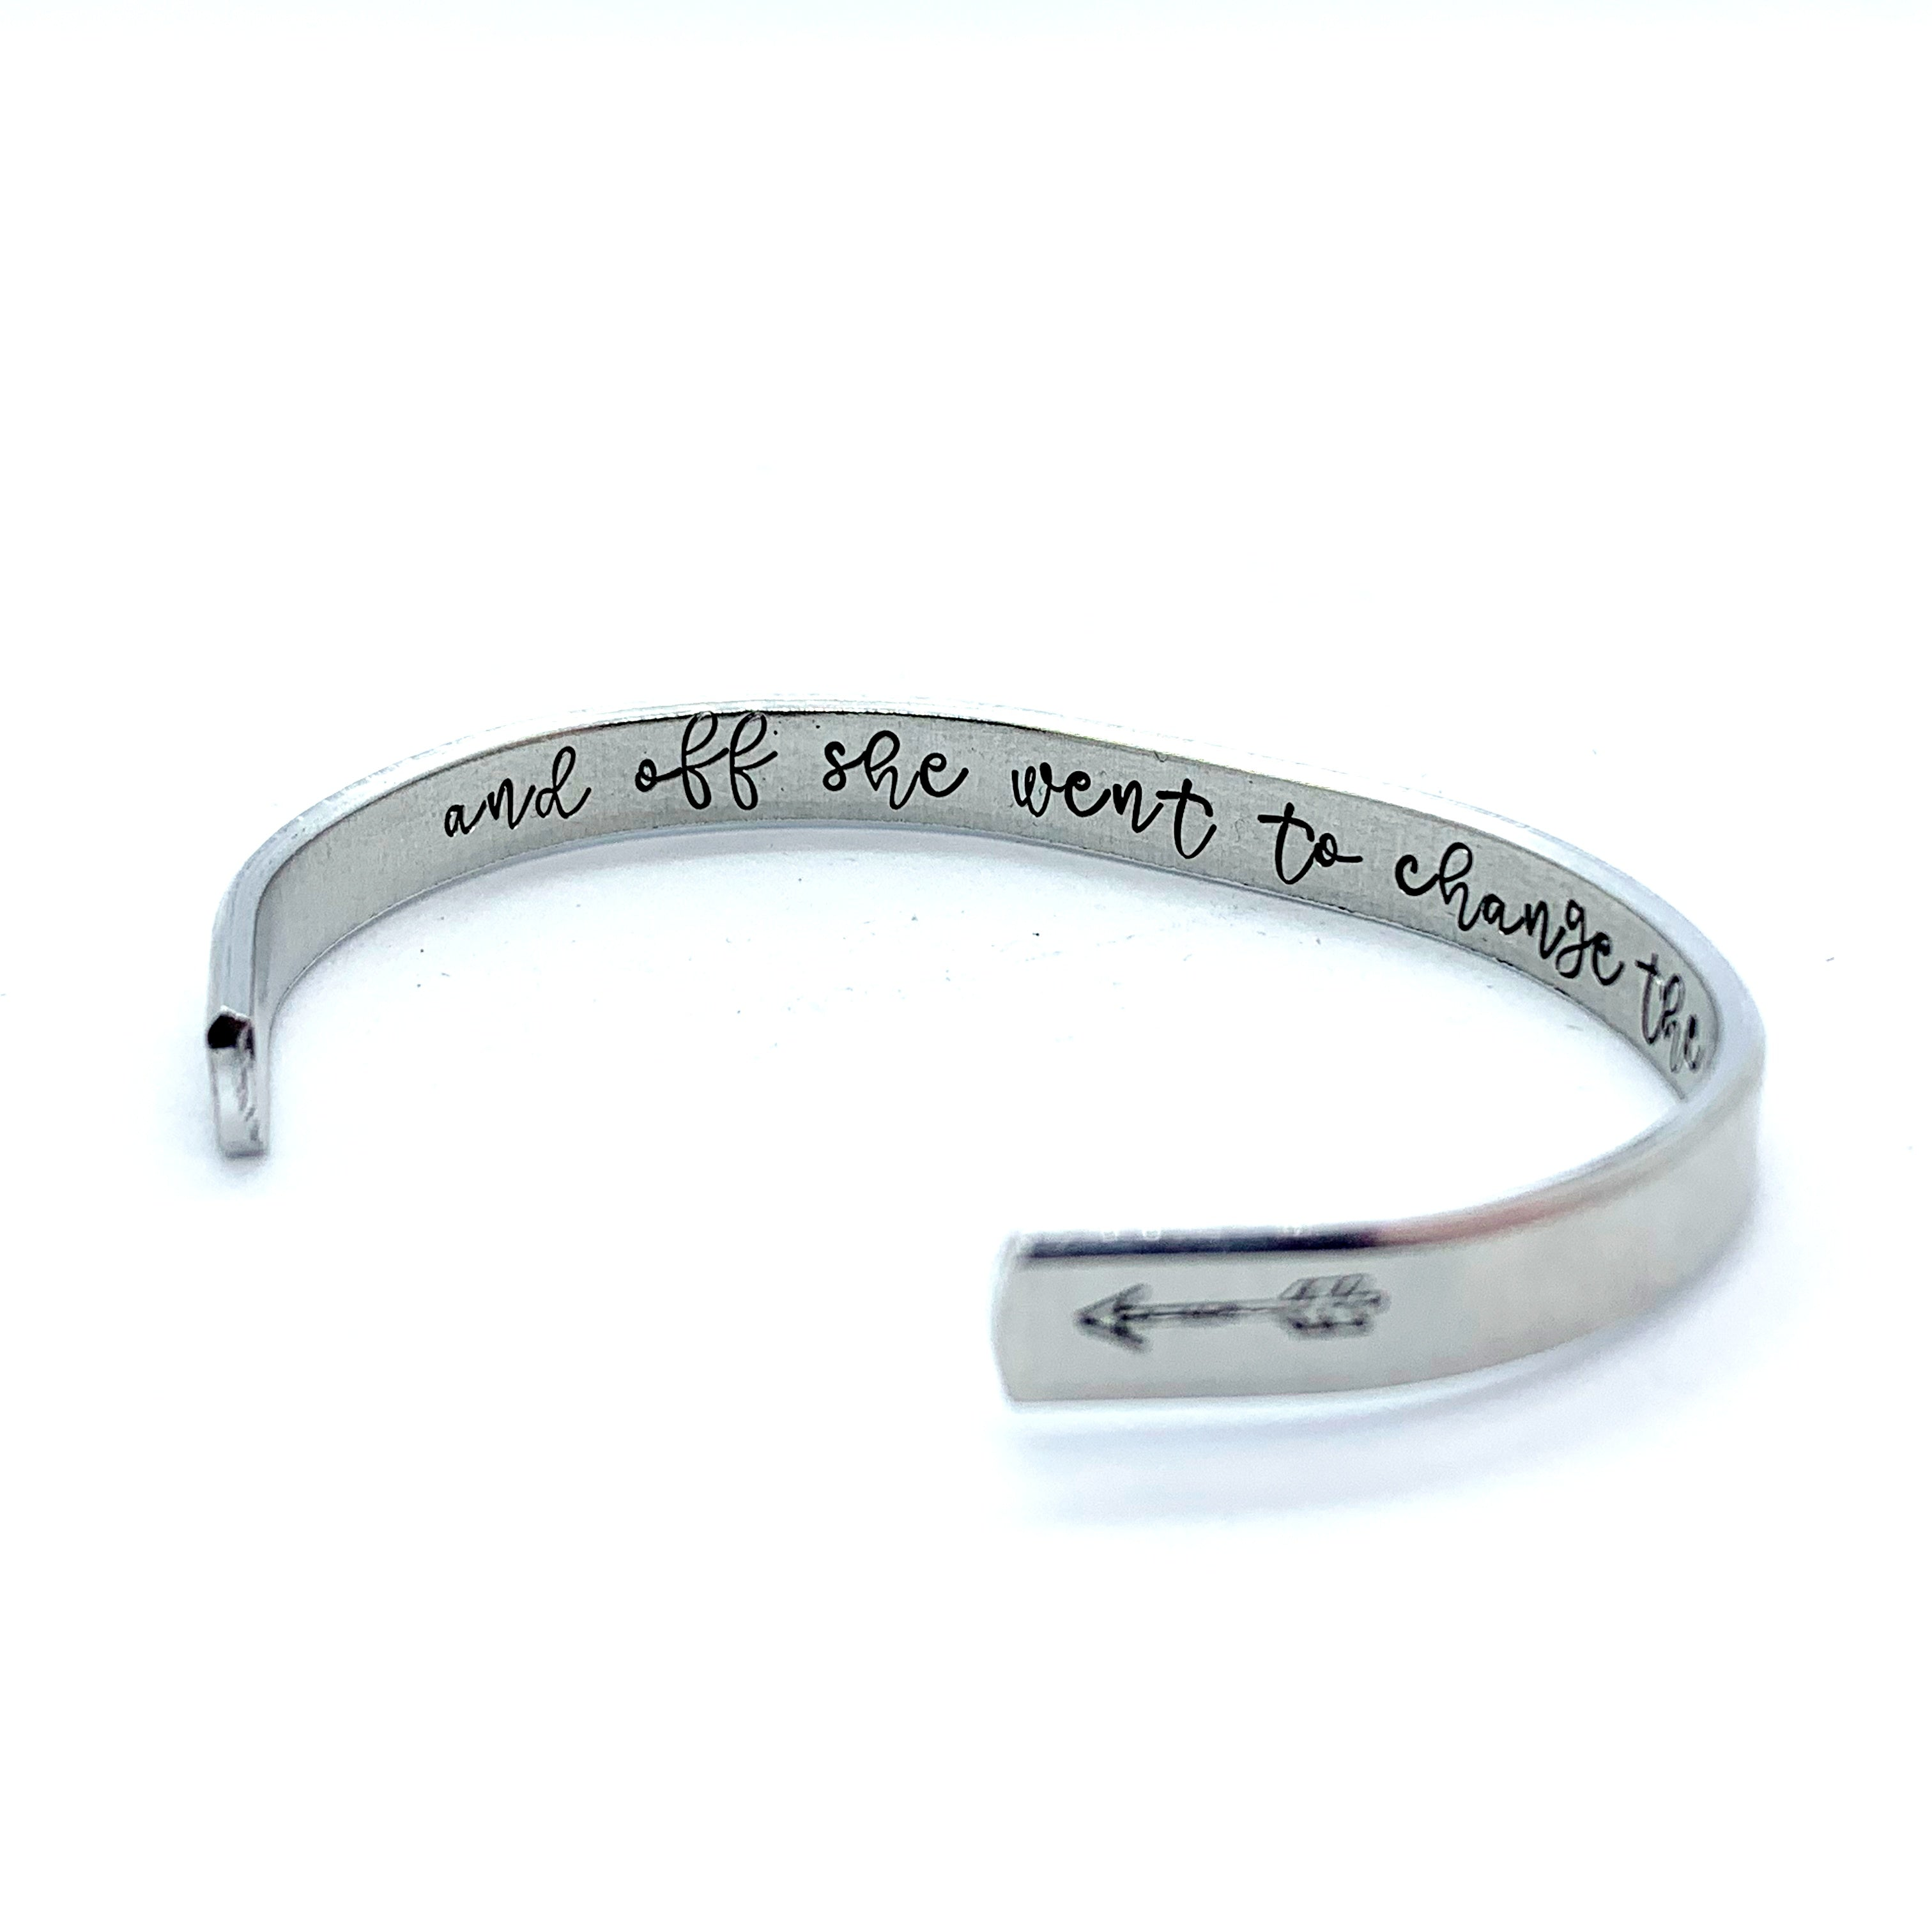 ¼ inch Aluminum Cuff -  (inside) And Off She Went To Change The World